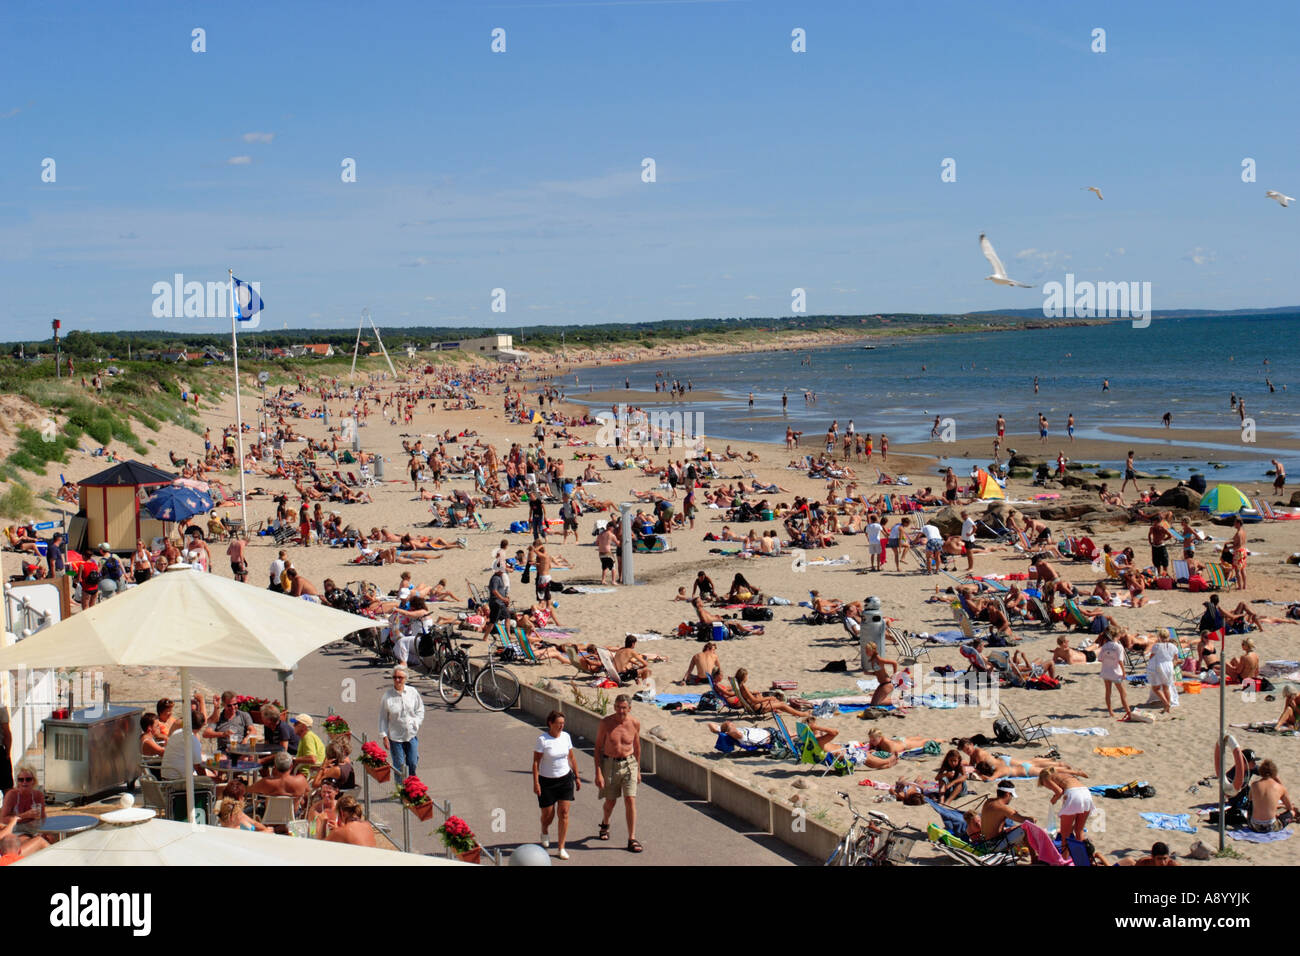 Café on the crowd beach - Stock Image